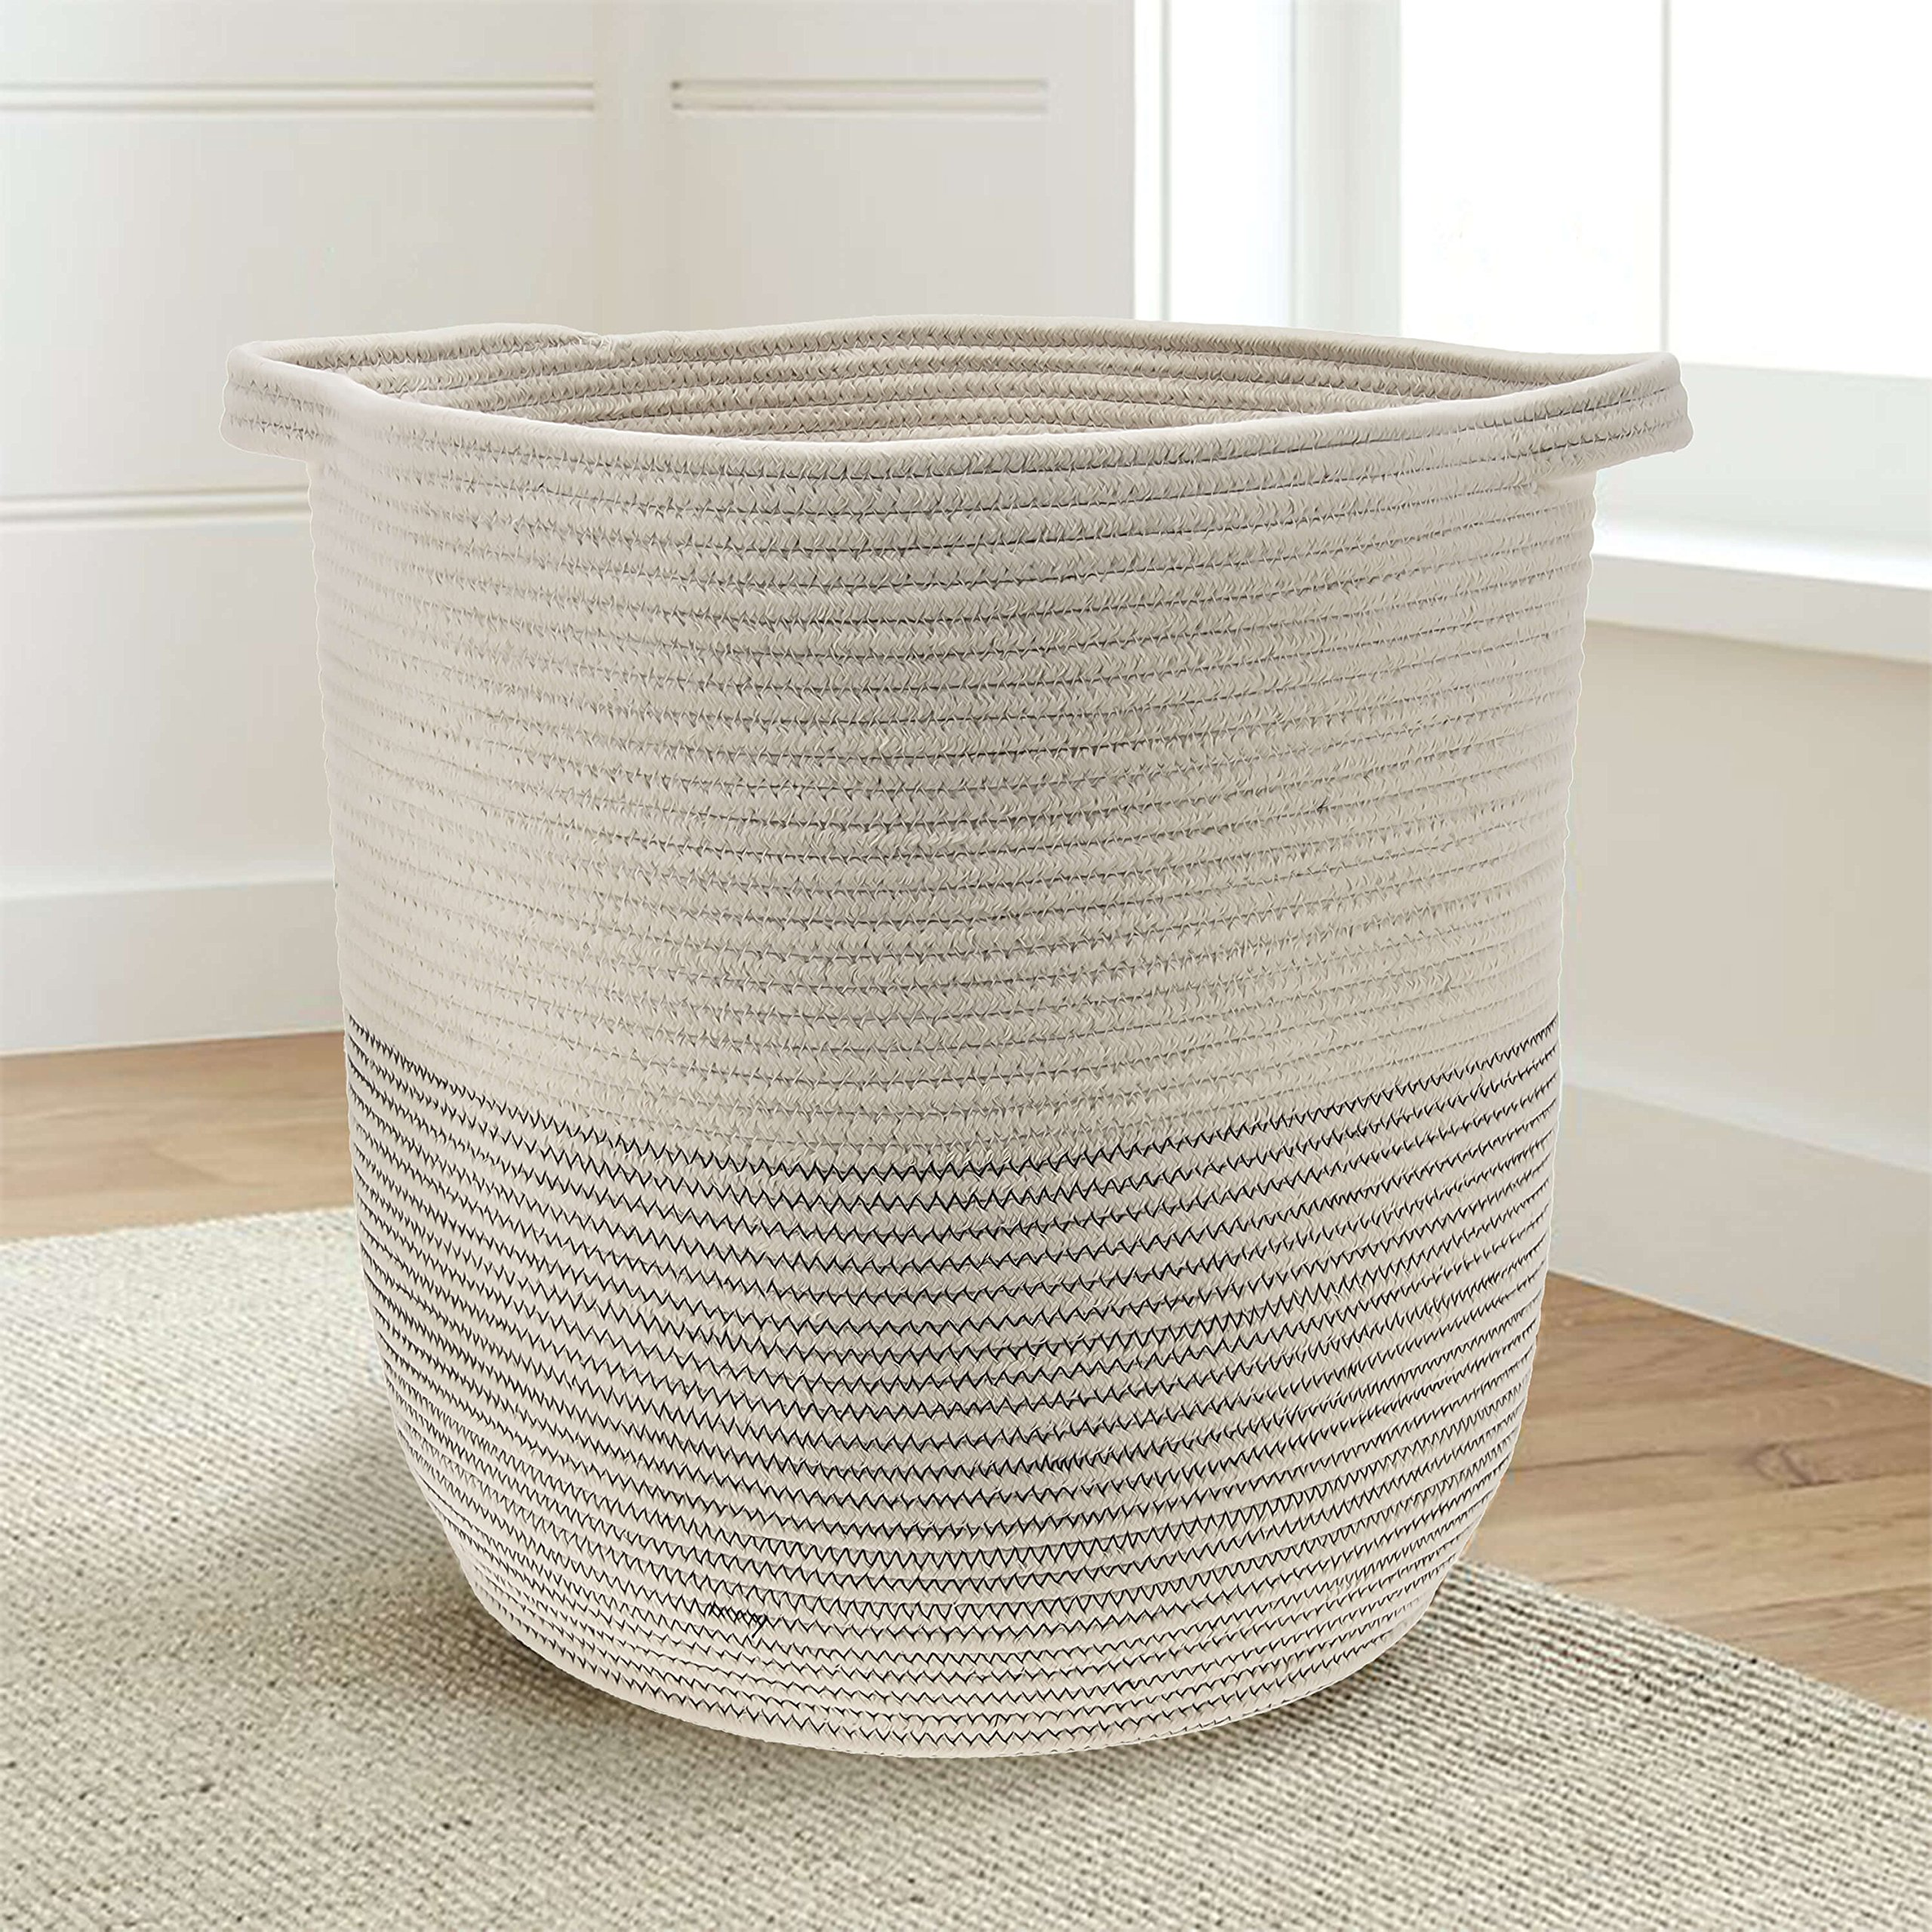 Amazon.com : INDRESSME XL Cotton Rope Storage Basket Baby